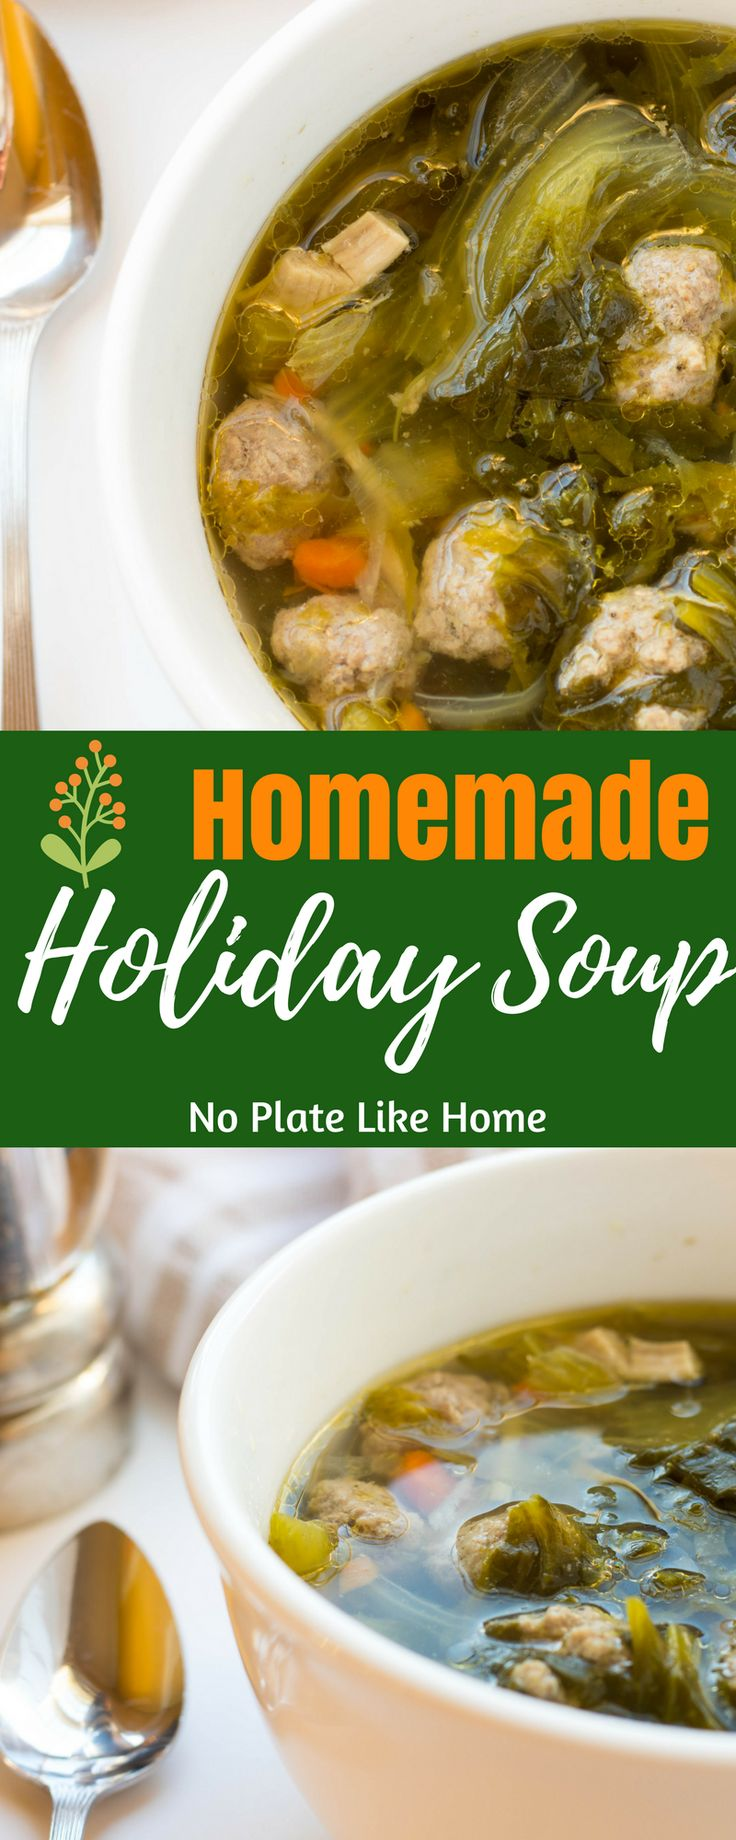 This delicious holiday favorite is made by stewing a whole chicken to get the best homemade flavor. You'll love the tasty mini meatballs and chicken bits. Serve this at Christmas dinner. This soup is a great cold remedy for sore throats too. Pin for later.